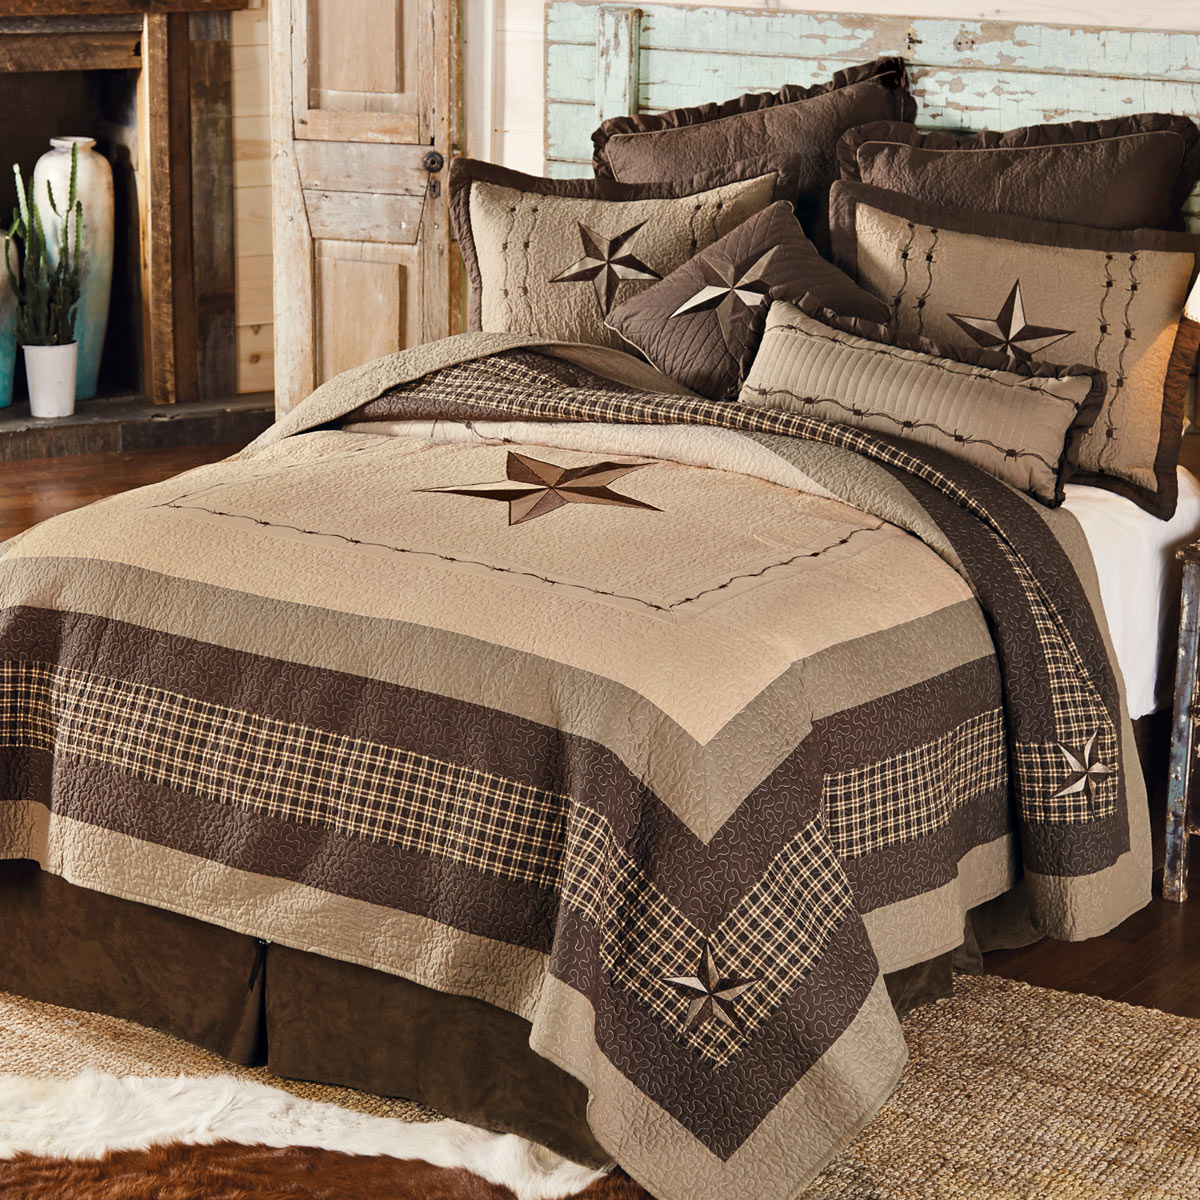 Black Forest Decor Stars and plaid quilt set - queen